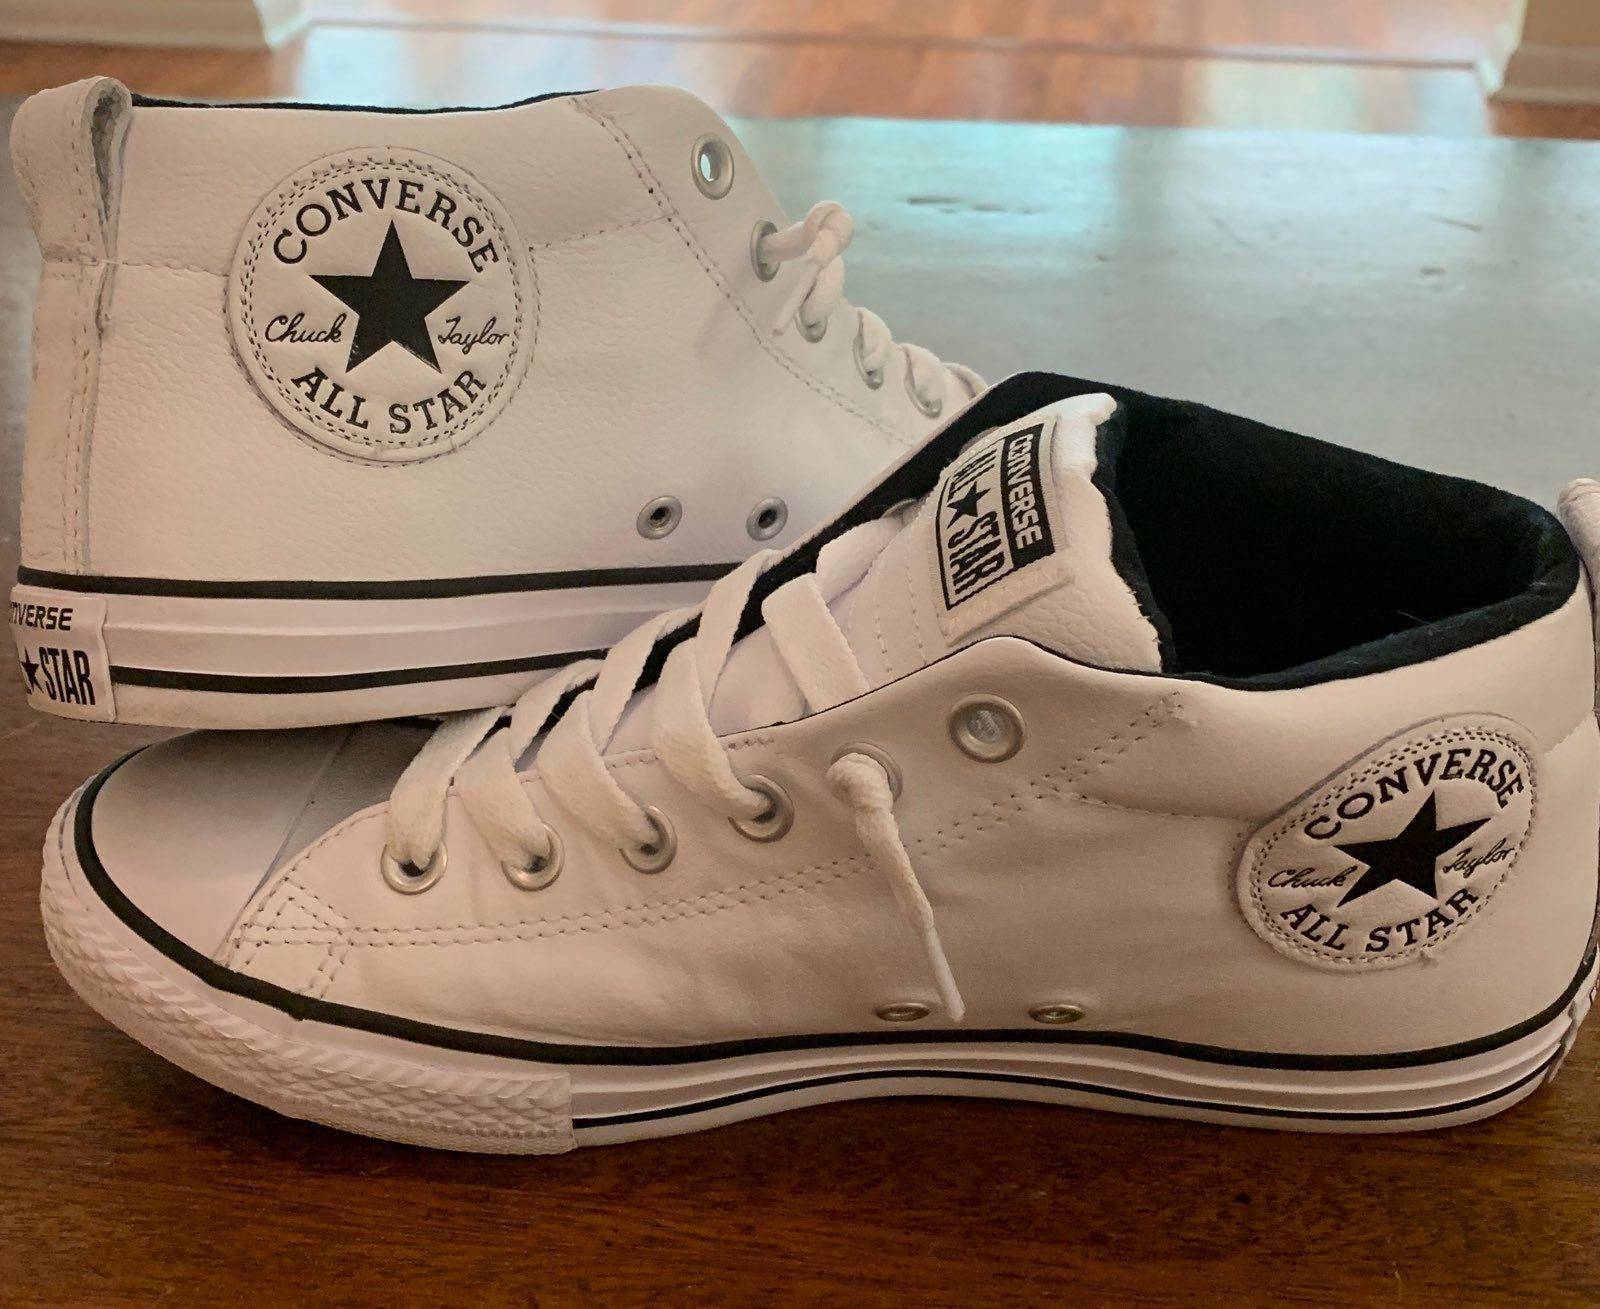 Converse, Sneakers fashion, Converse style